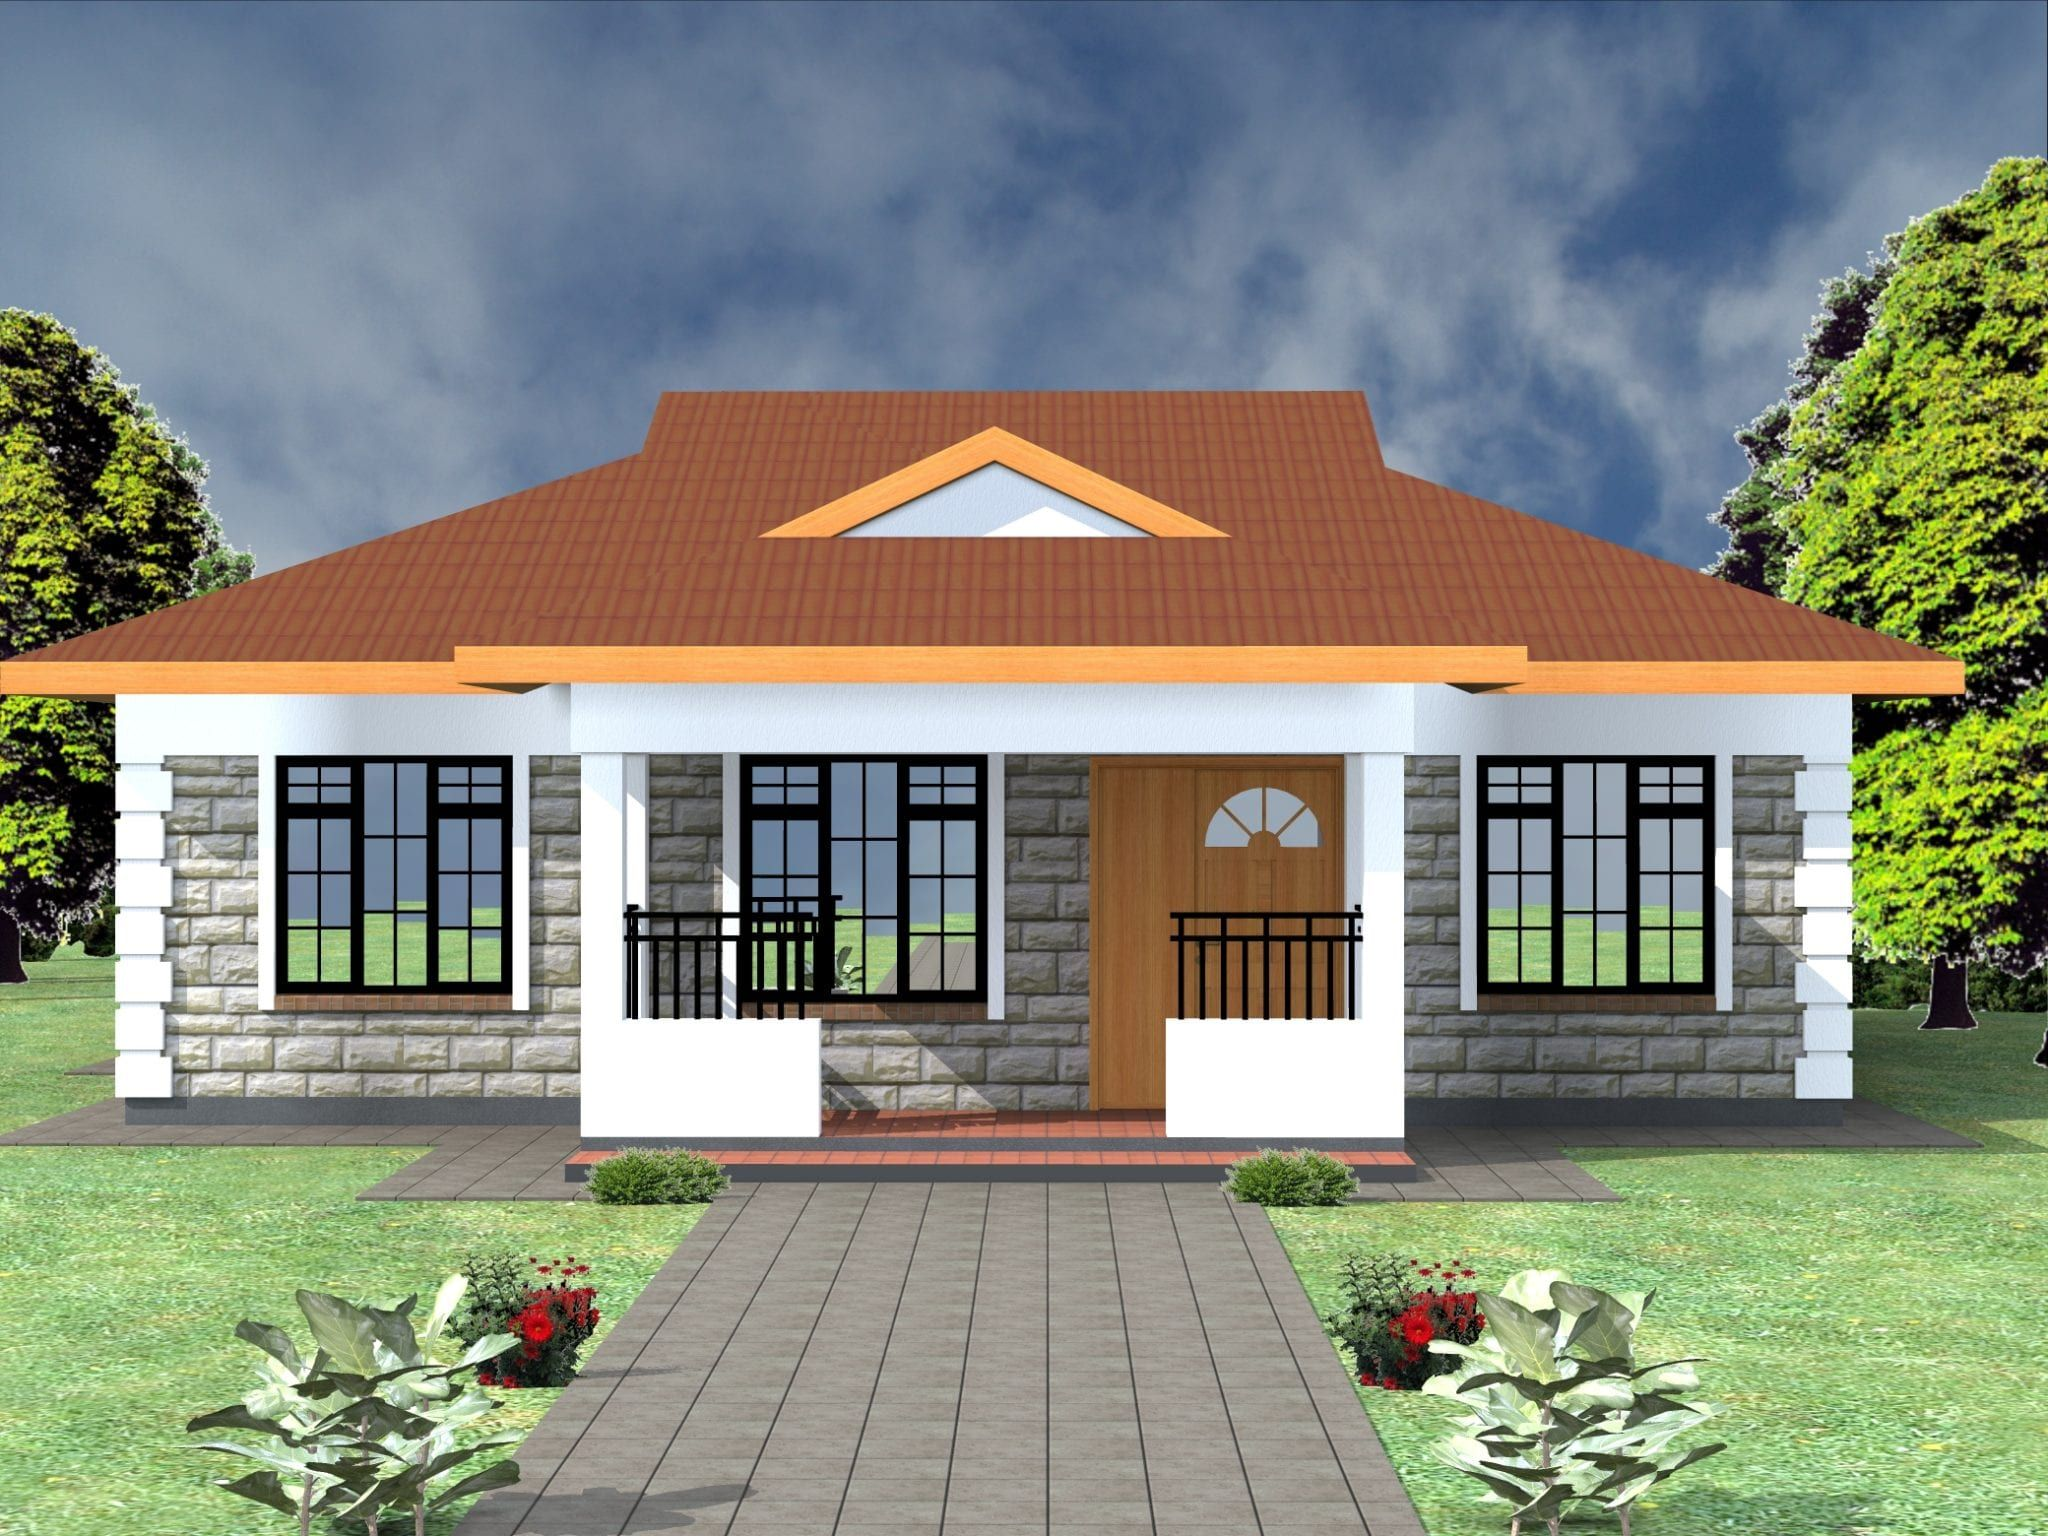 3 Bedroom Design 1097b Bedroom House Plans Beautiful House Plans Cottage Style House Plans